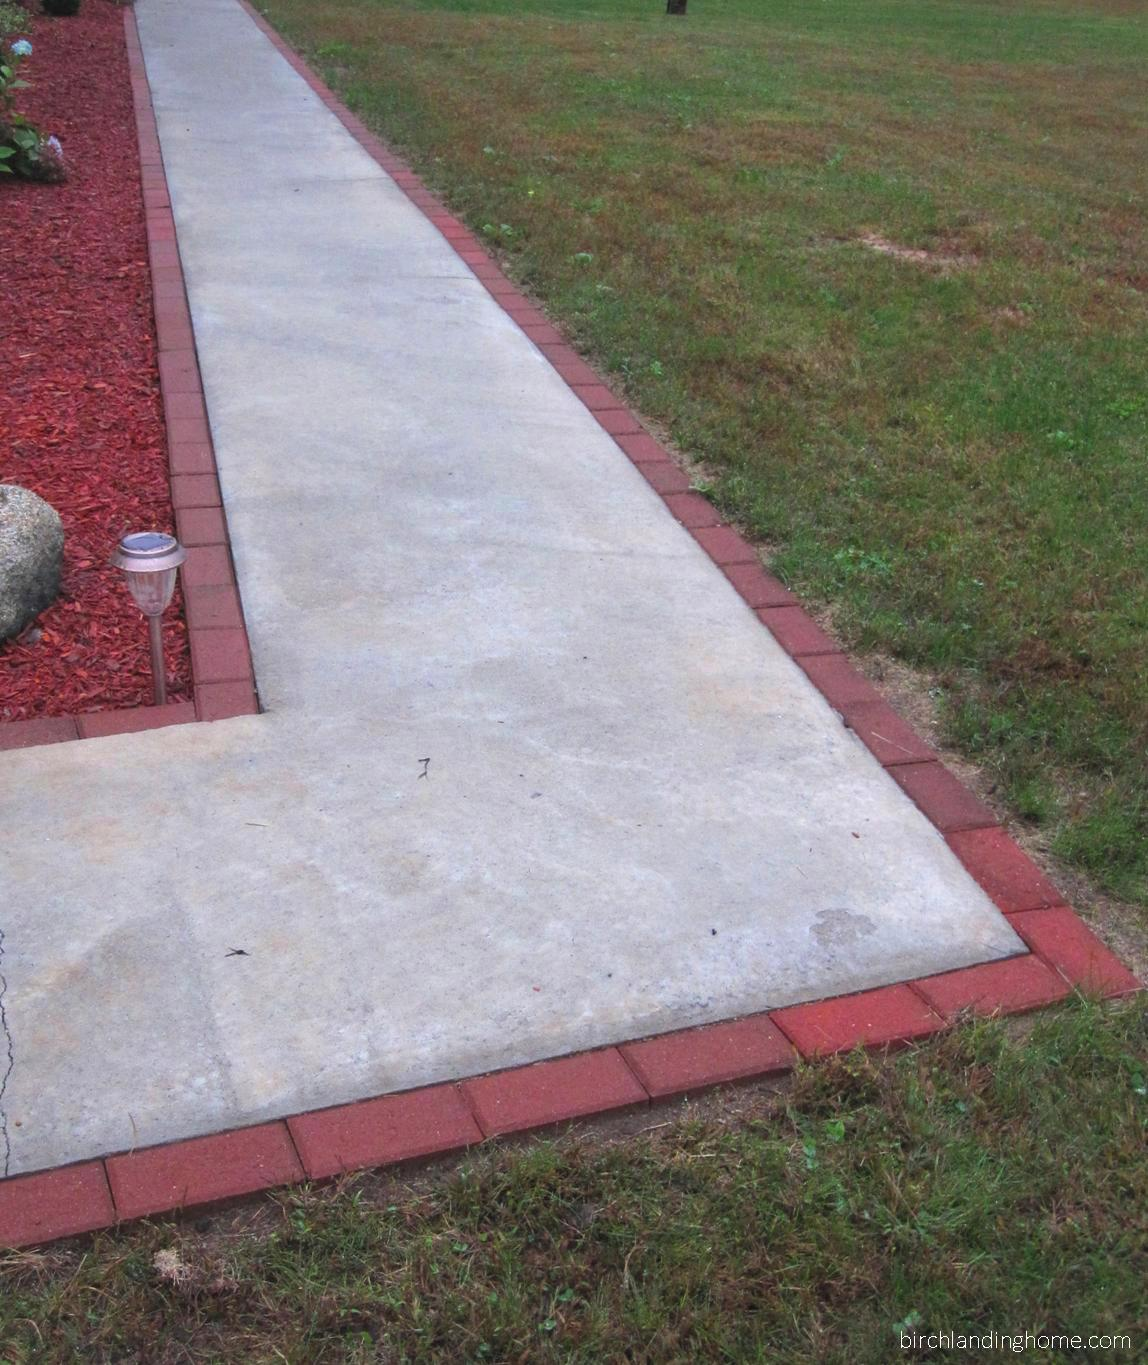 Instant value and class for a worn concrete path